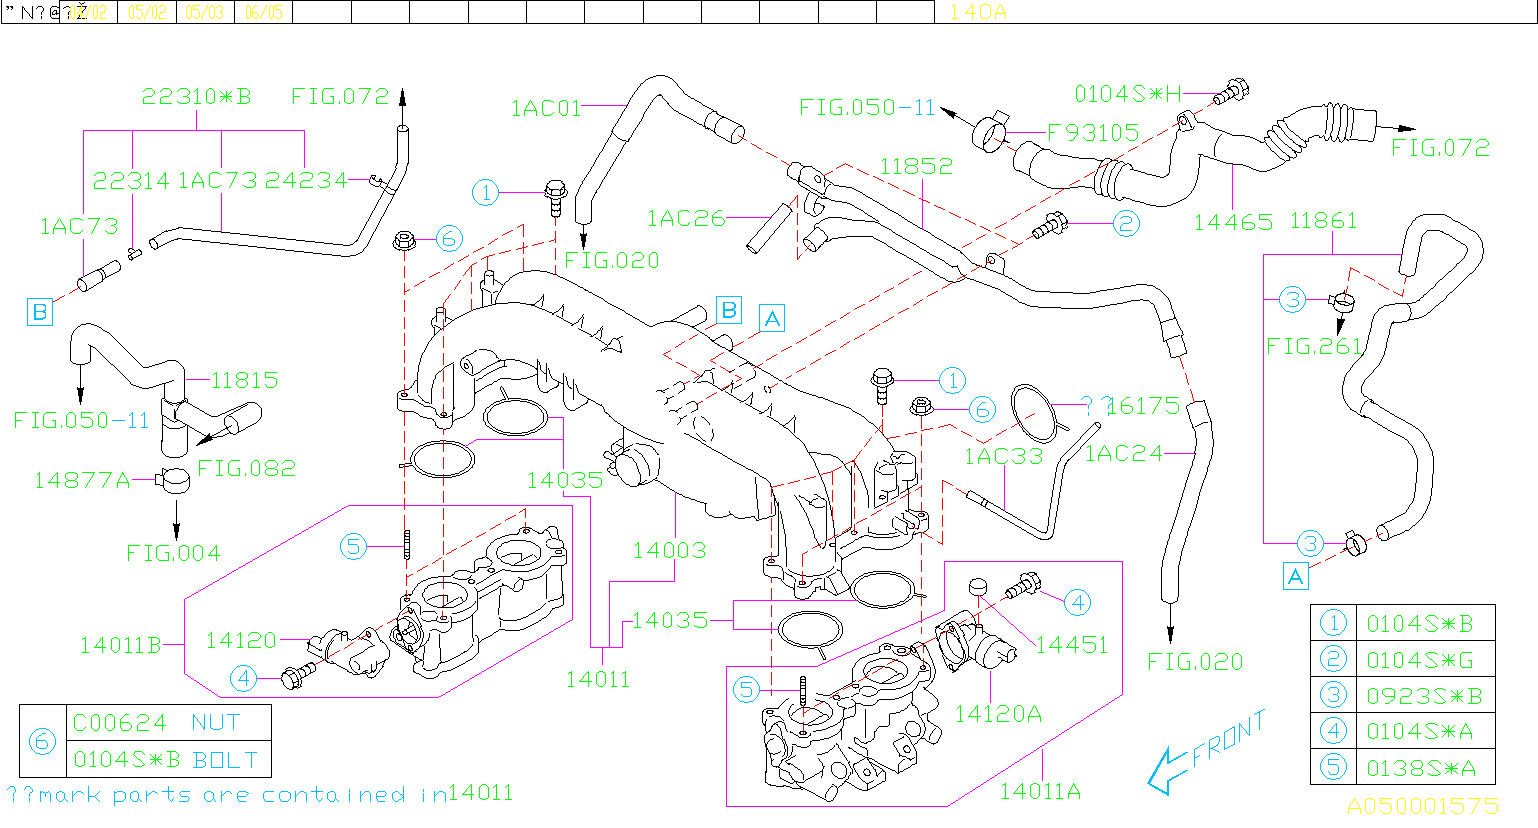 hight resolution of ej25 engine diagram intake system wiring library rh 93 codingcommunity de 4g63 engine diagram vq35de engine